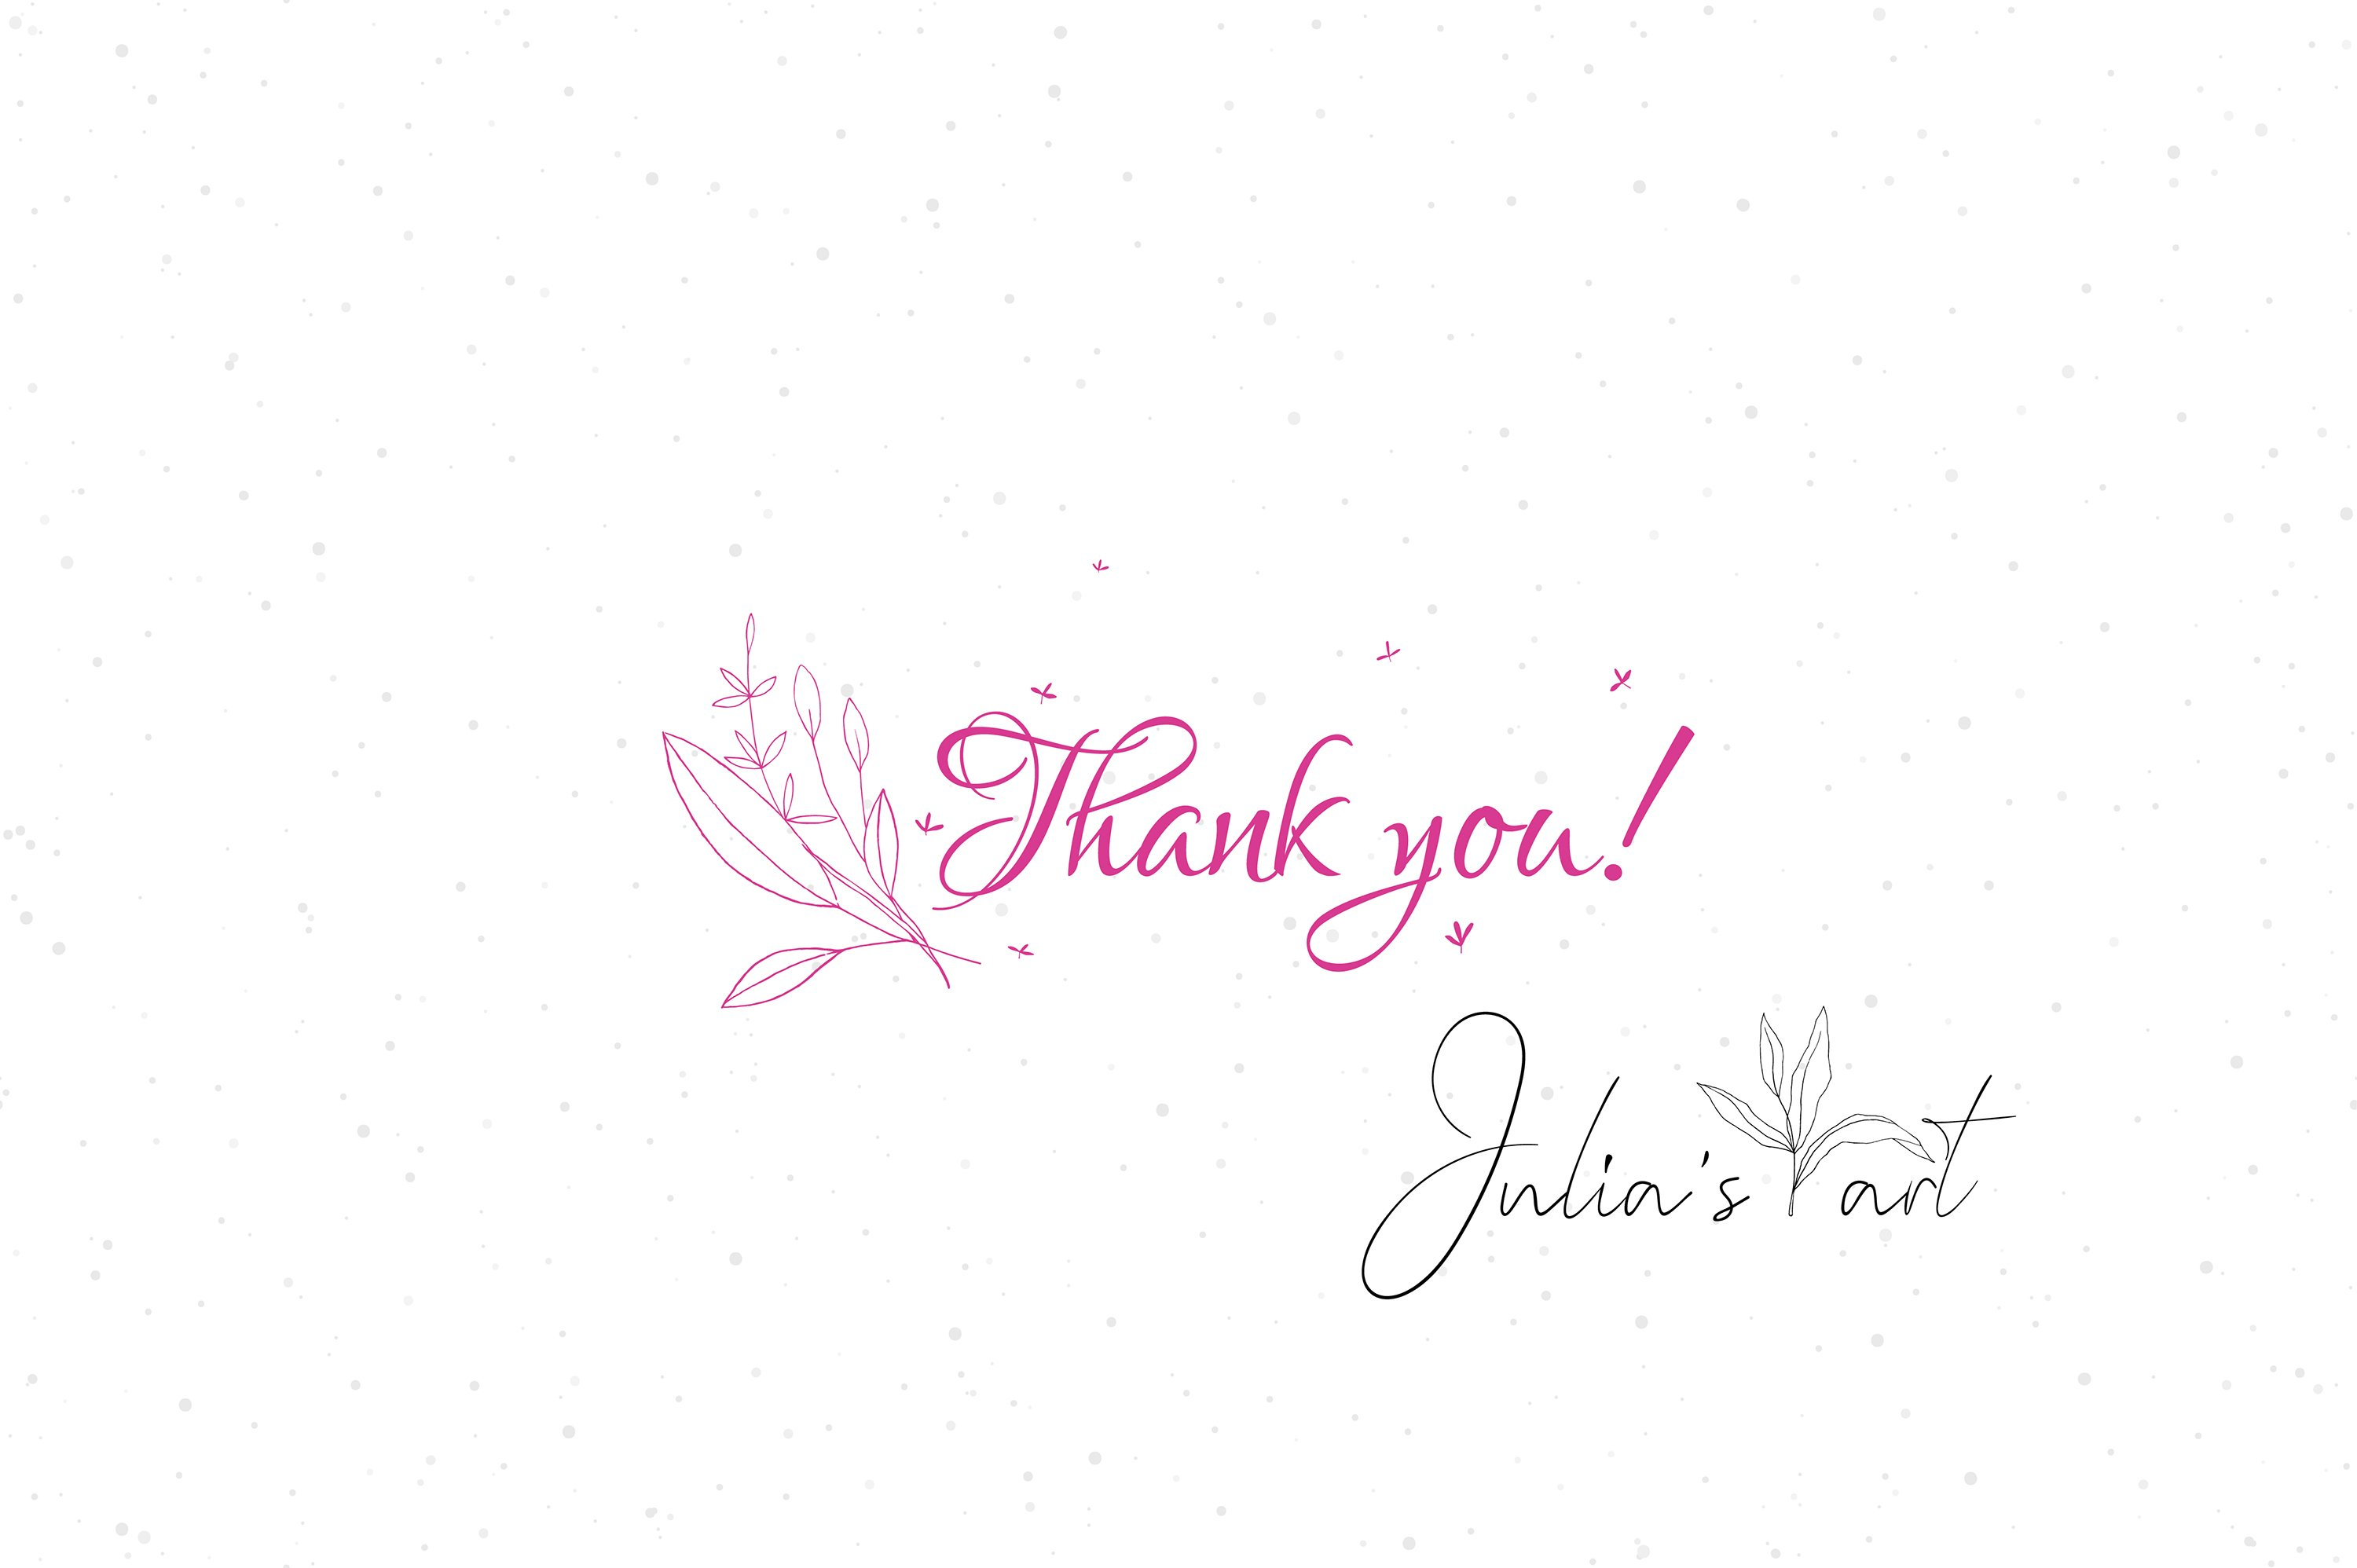 Pink flowers vector patterns - Ai, EPS, JPG, PNG example image 4